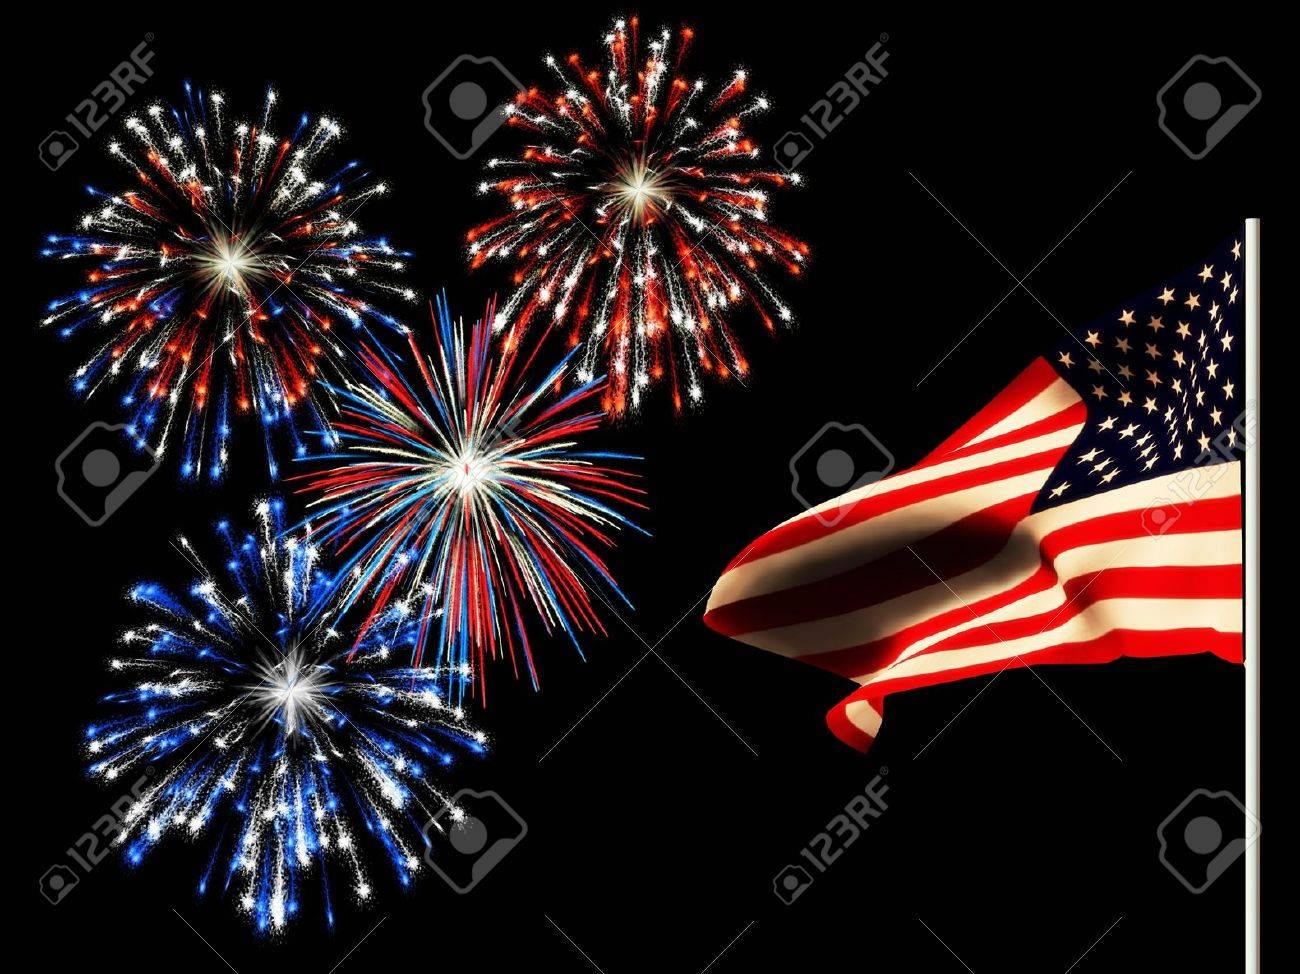 fireworks on the 4th of july and the american flag stock photo 4762671